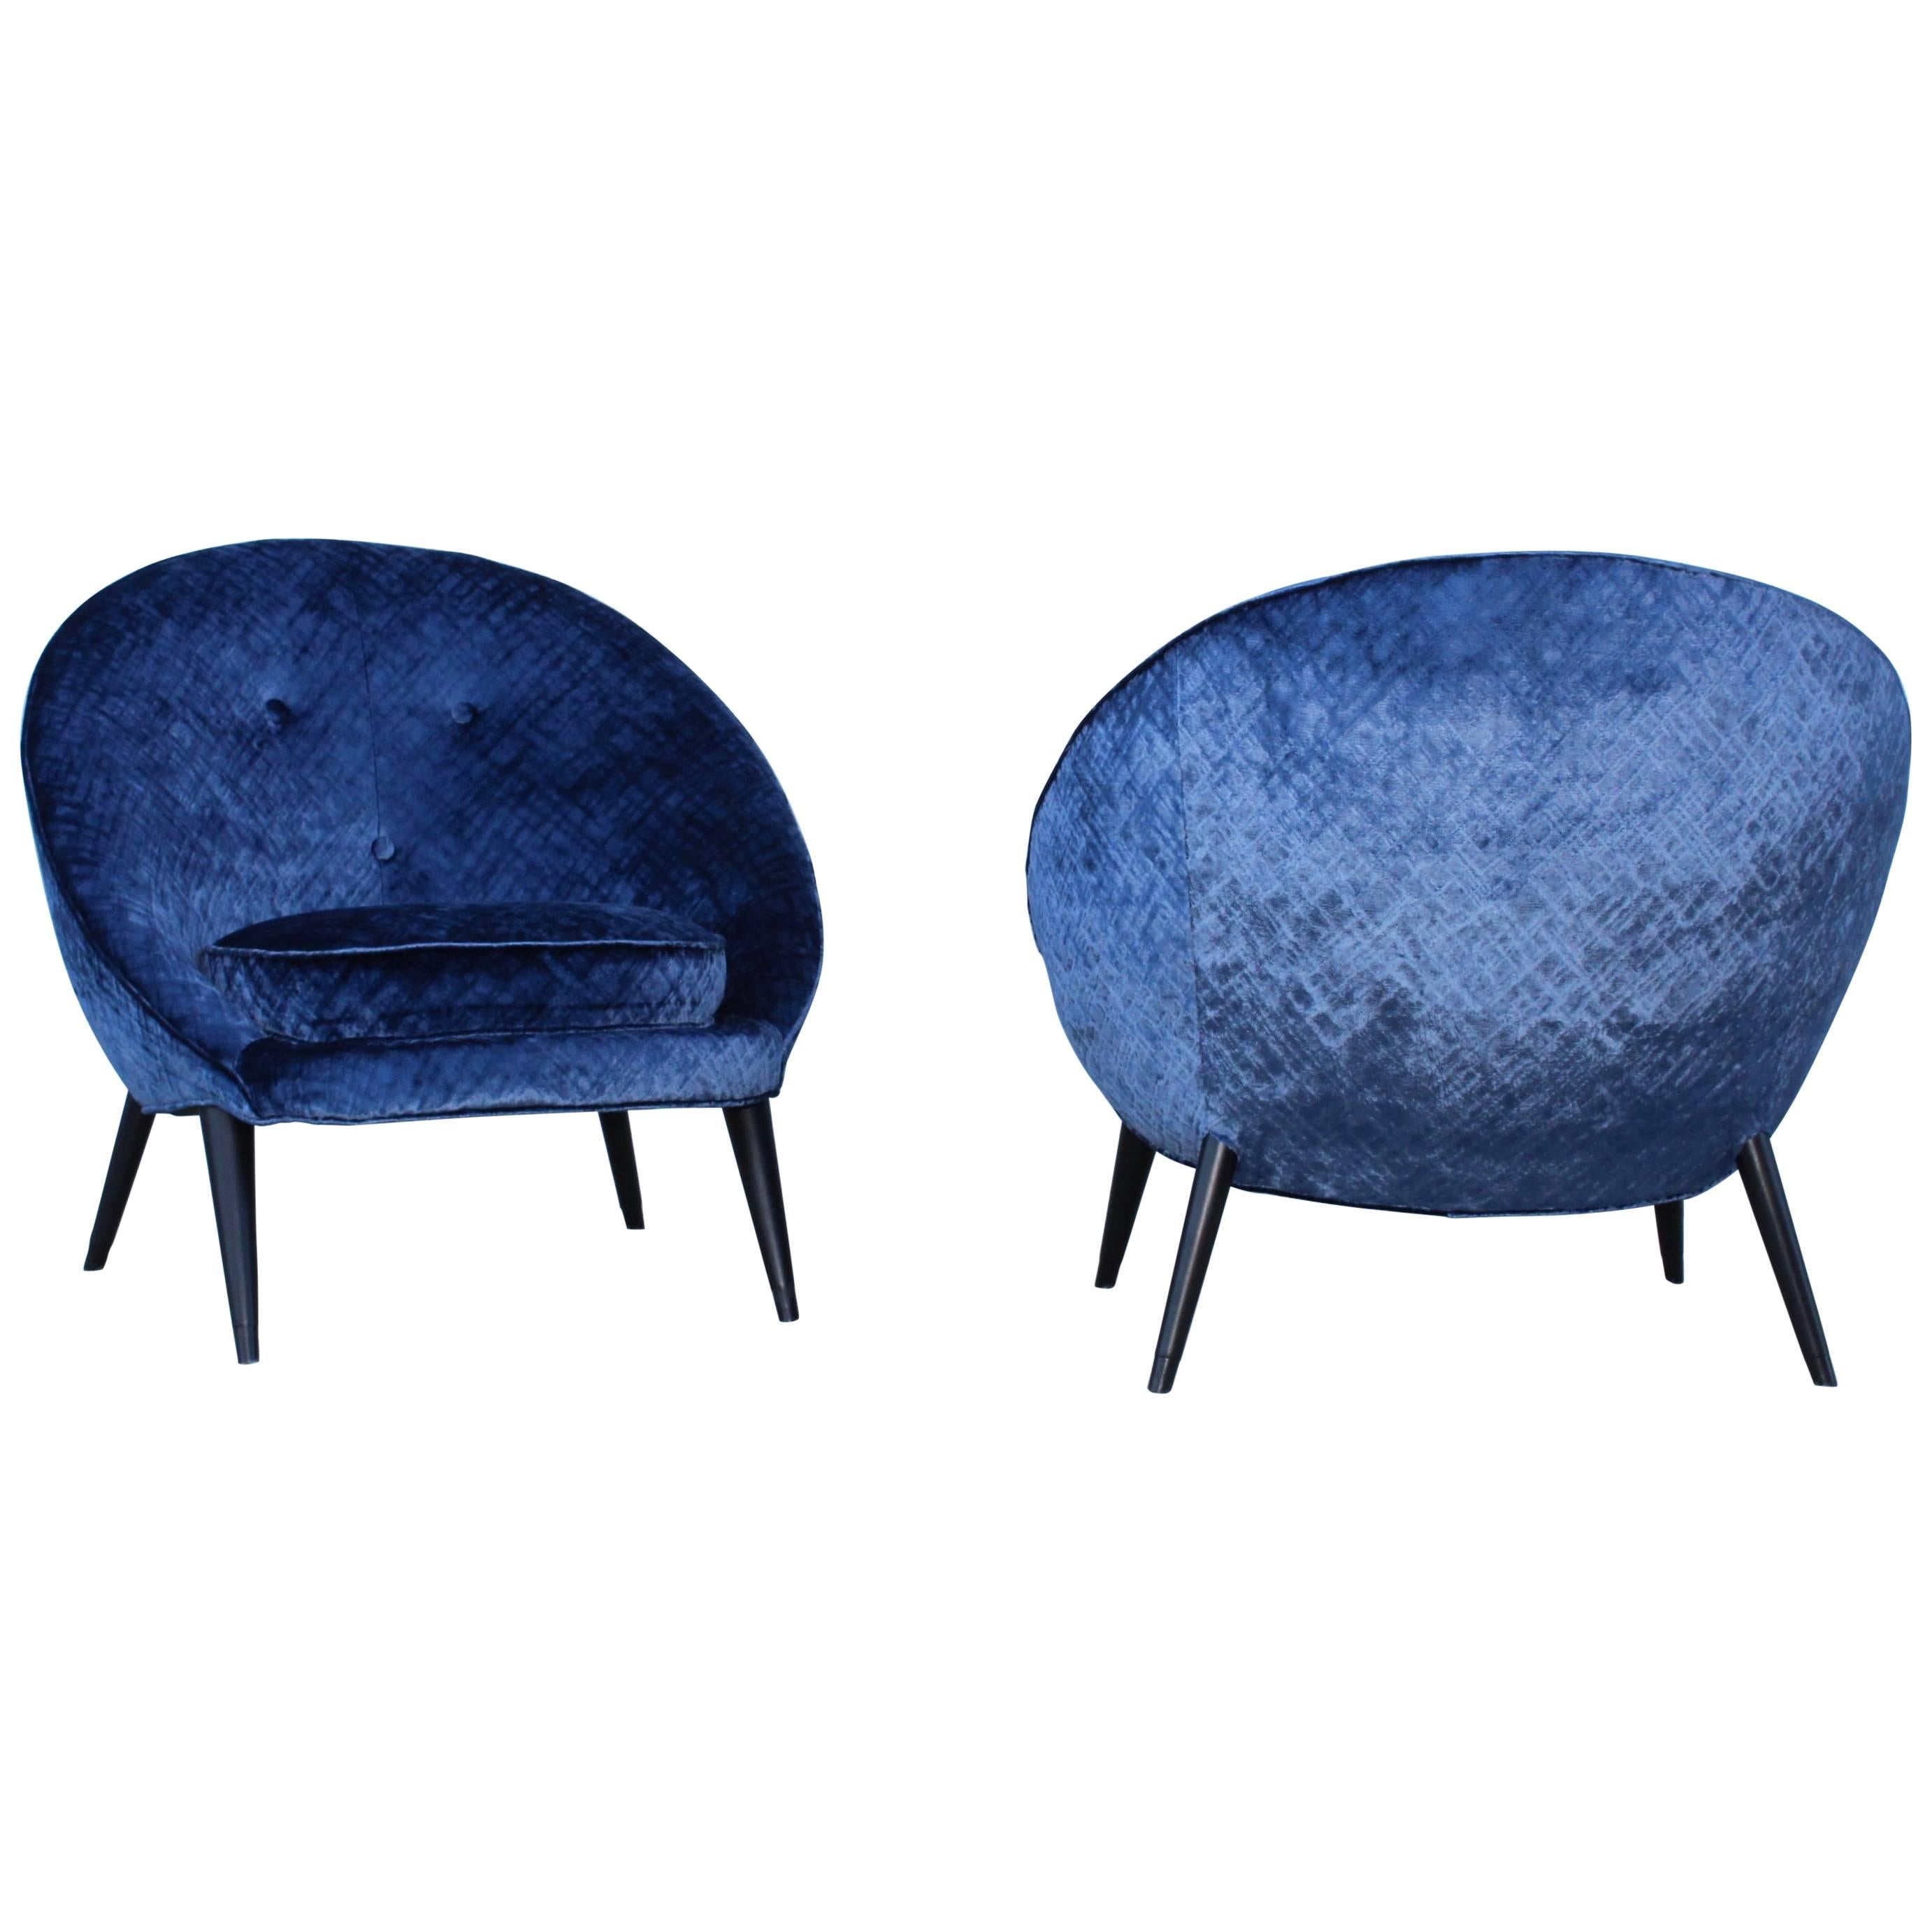 1960s Jean Royère Style Lounge Chairs